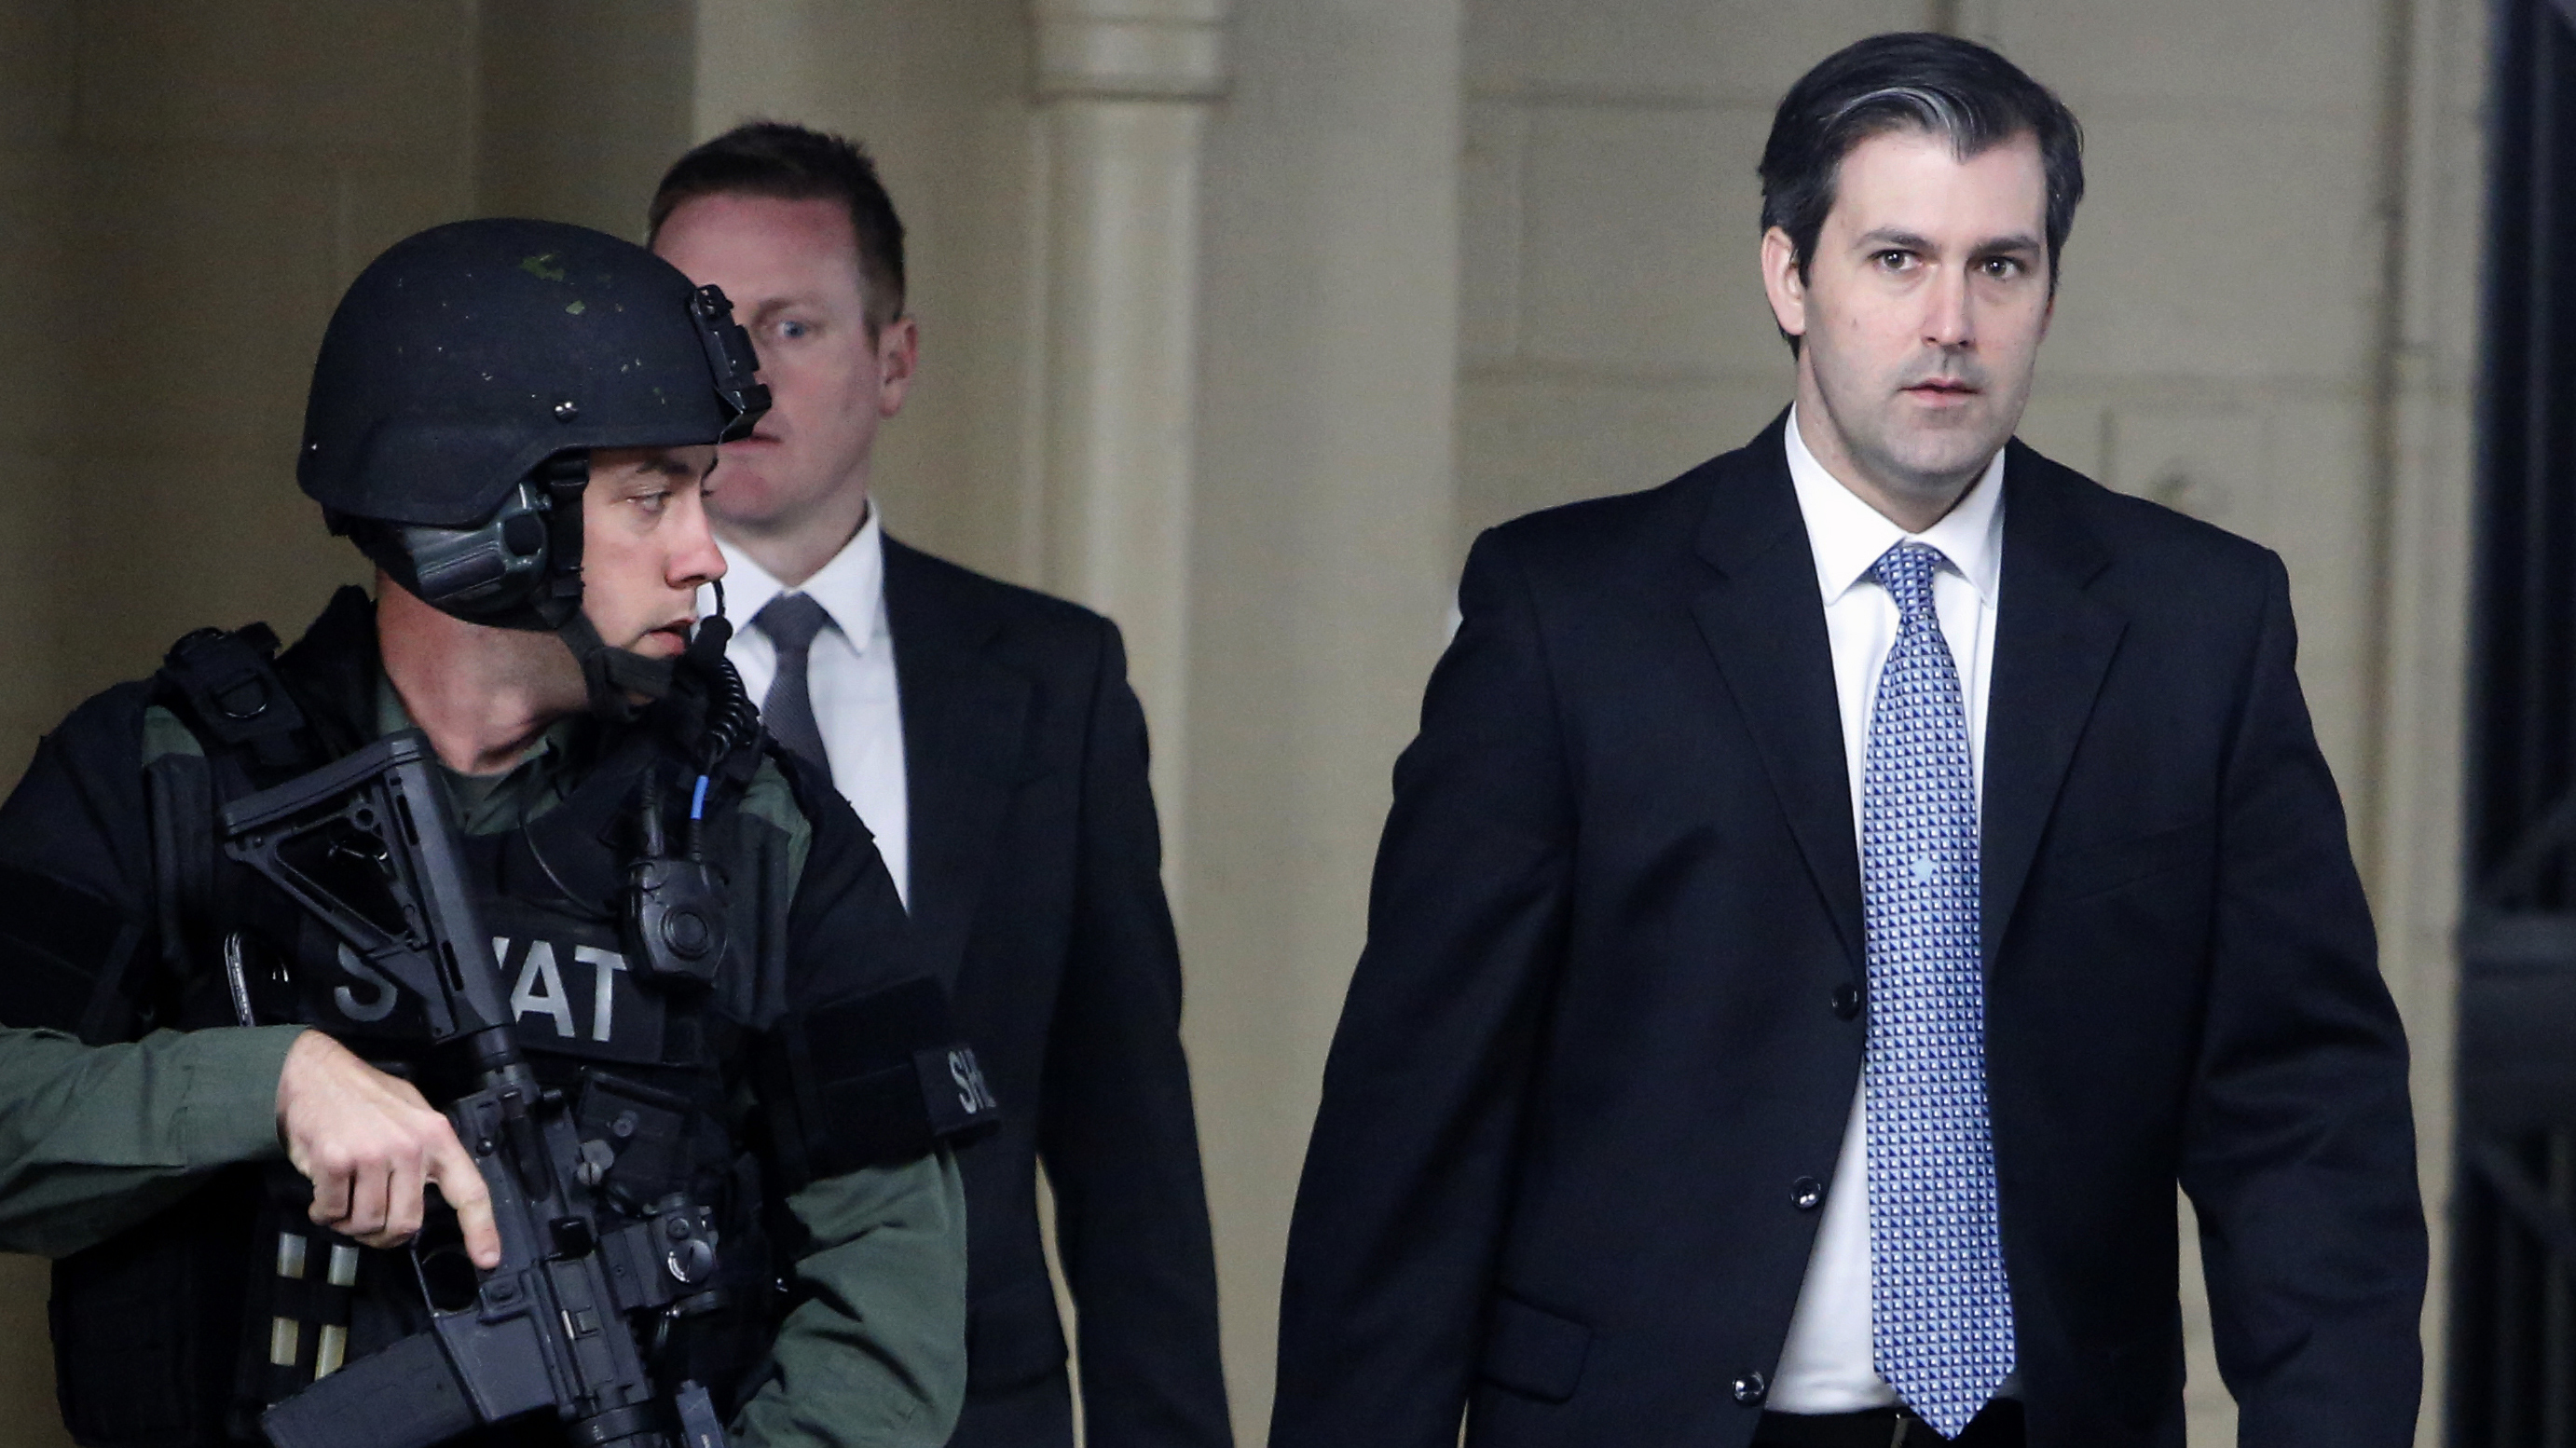 Former North Charleston, S.C., police officer Michael Slager is expected to plead guilty on Tuesday afternoon to one charge of violating Walter Scott